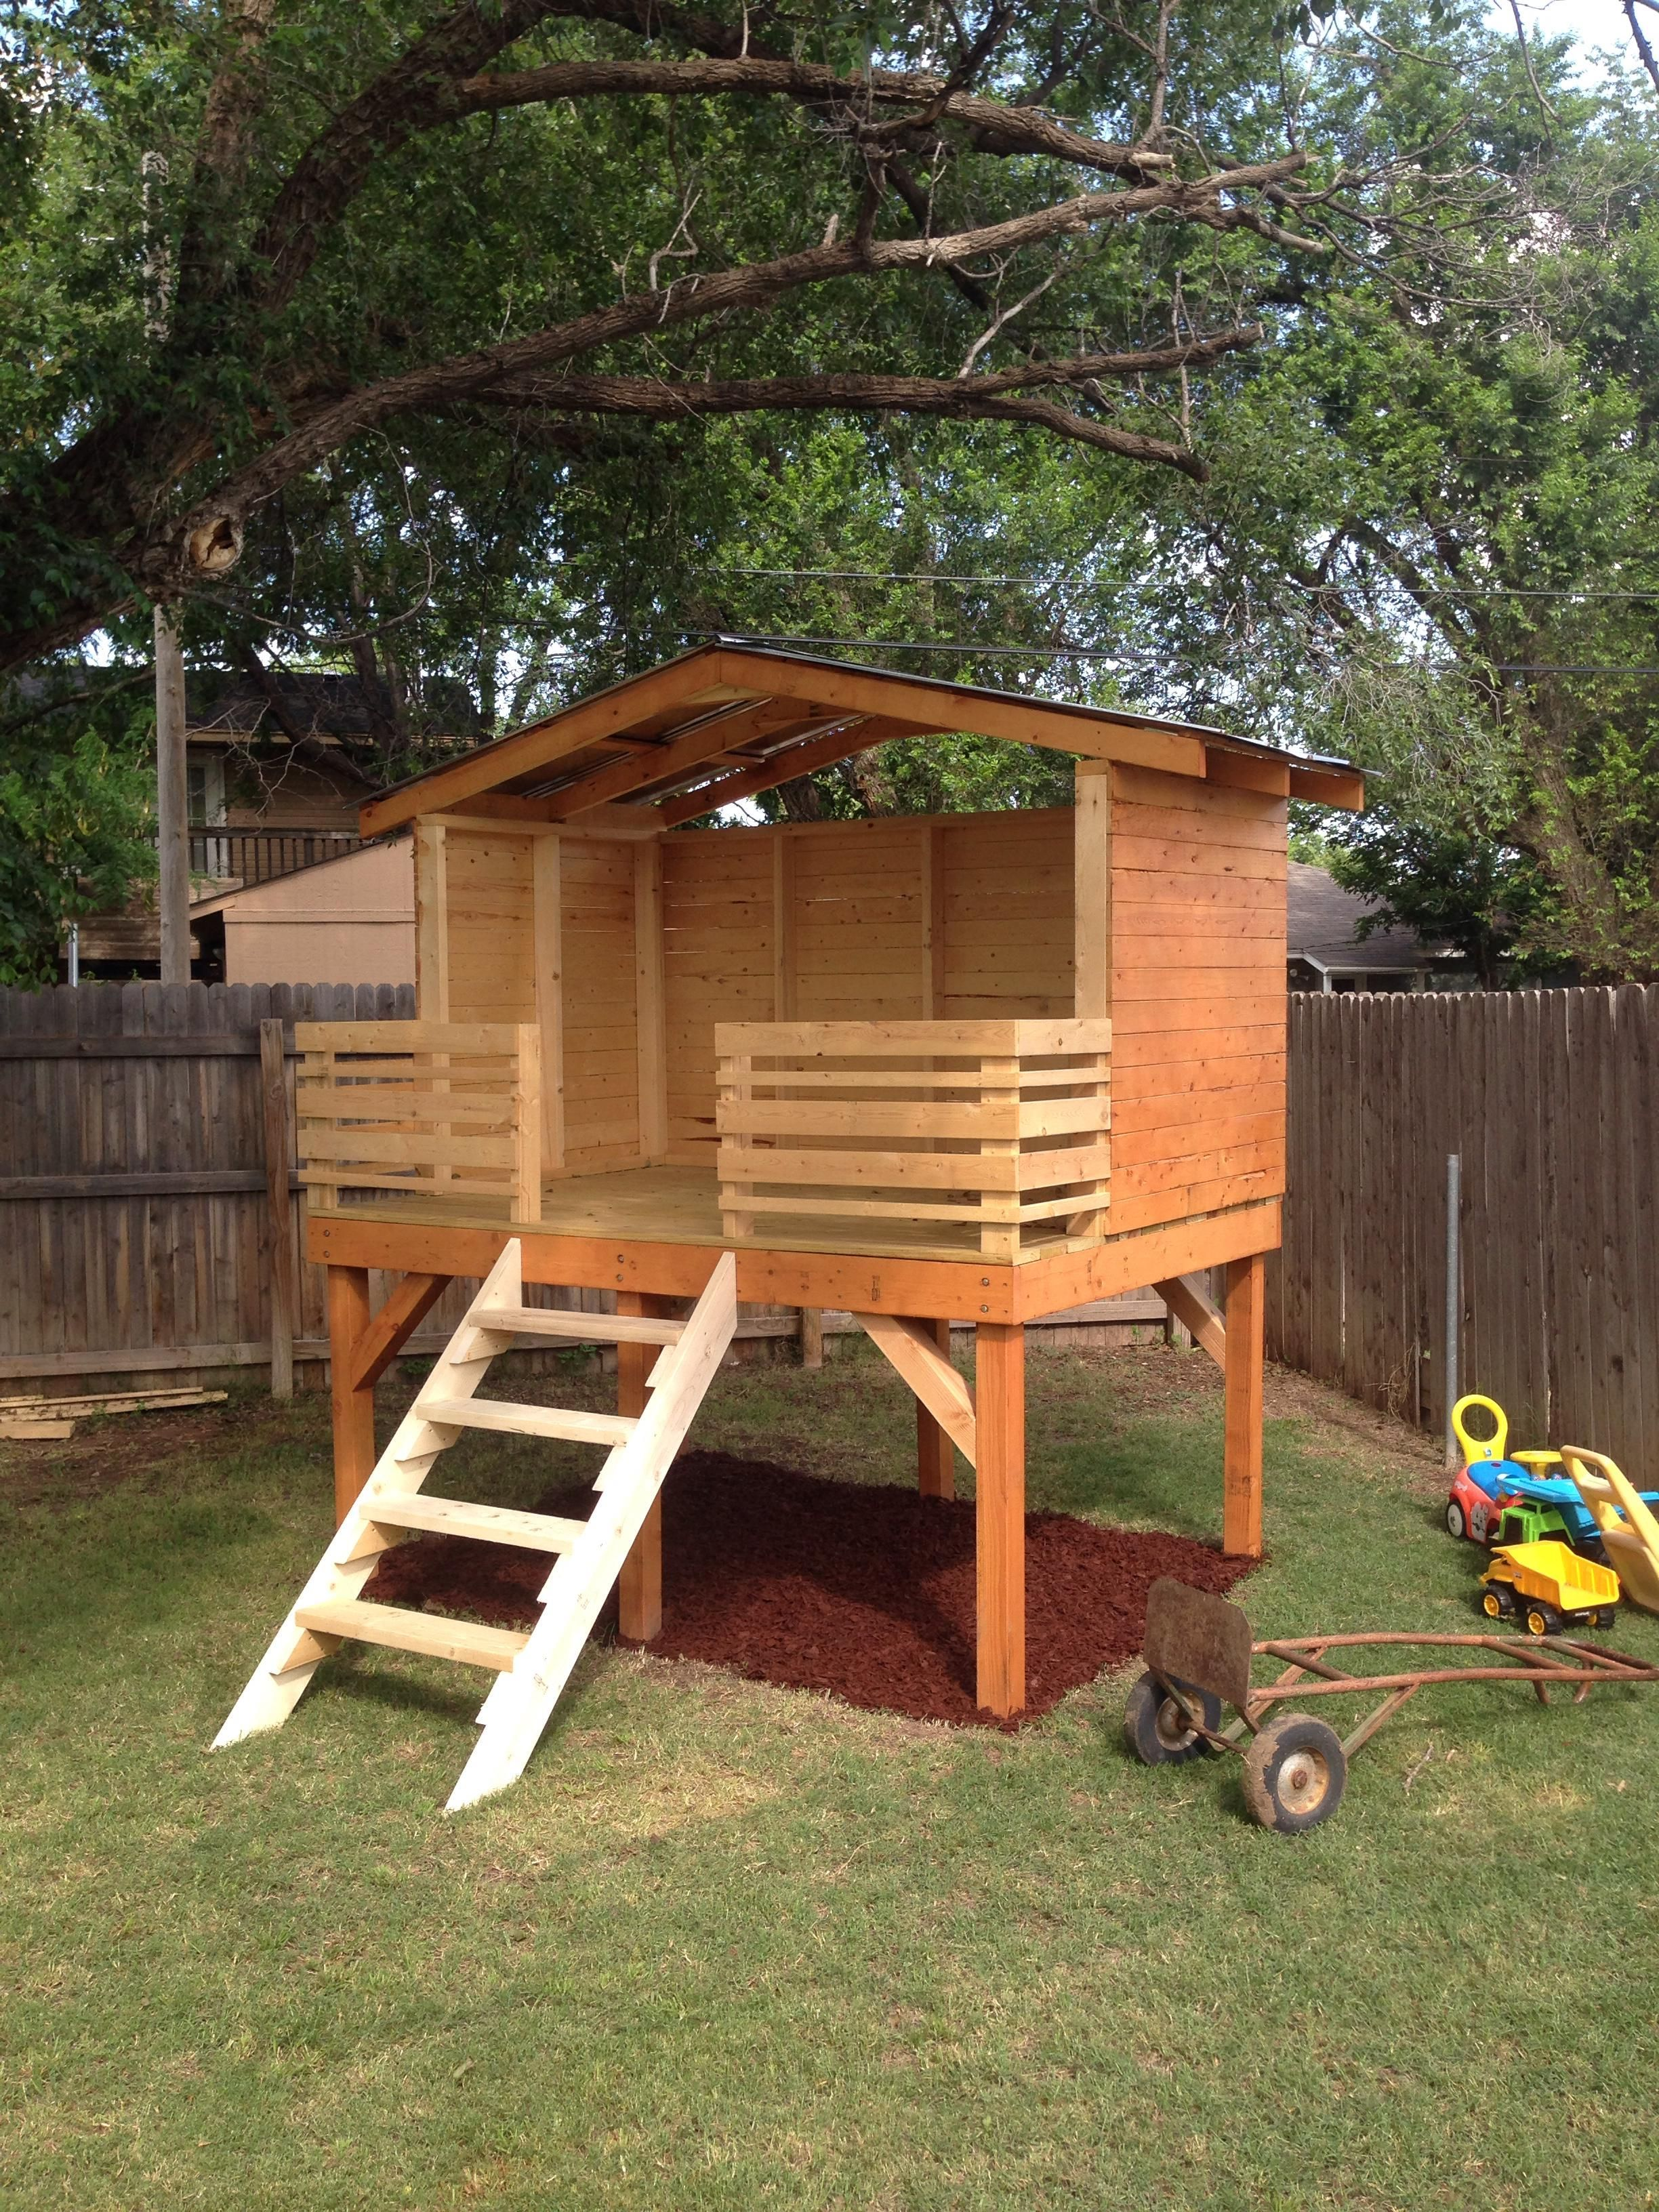 Play fort! | Pinterest | Internet, Play fort and Garden